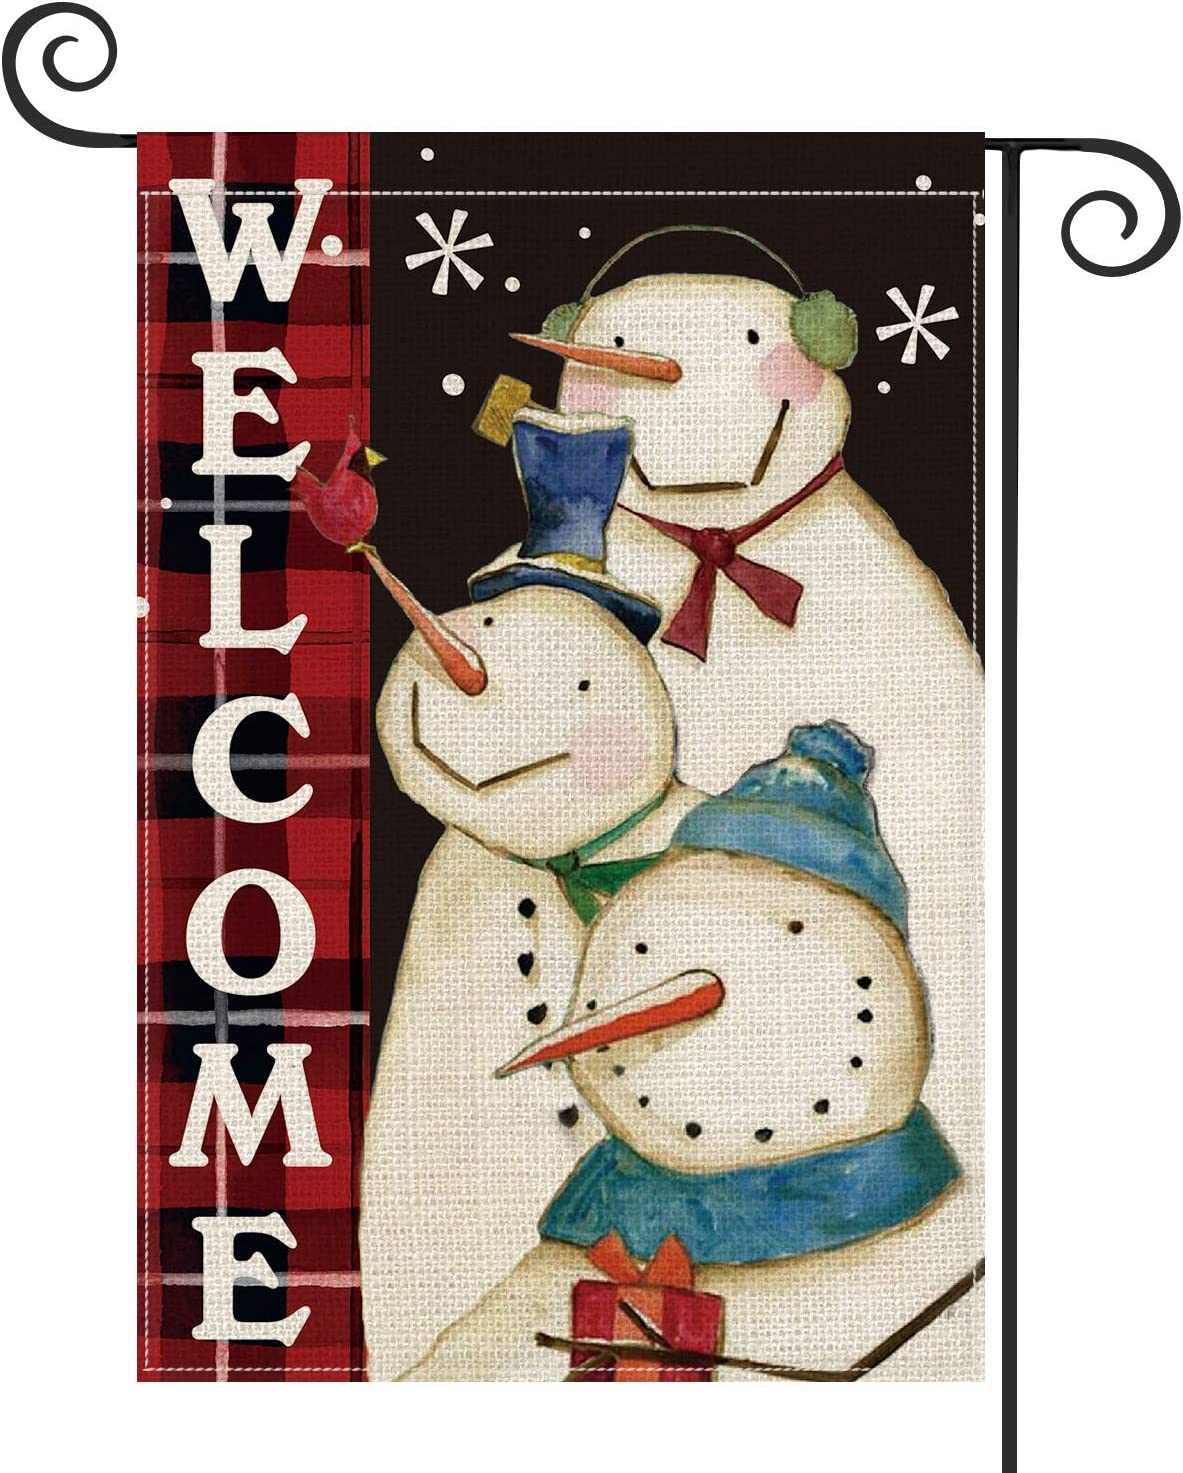 AVOIN Snowman Welcome Garden Flag Vertical Double Sized, Winter Holiday Christmas Burlap Yard Outdoor Decoration 12.5 x 18 Inch